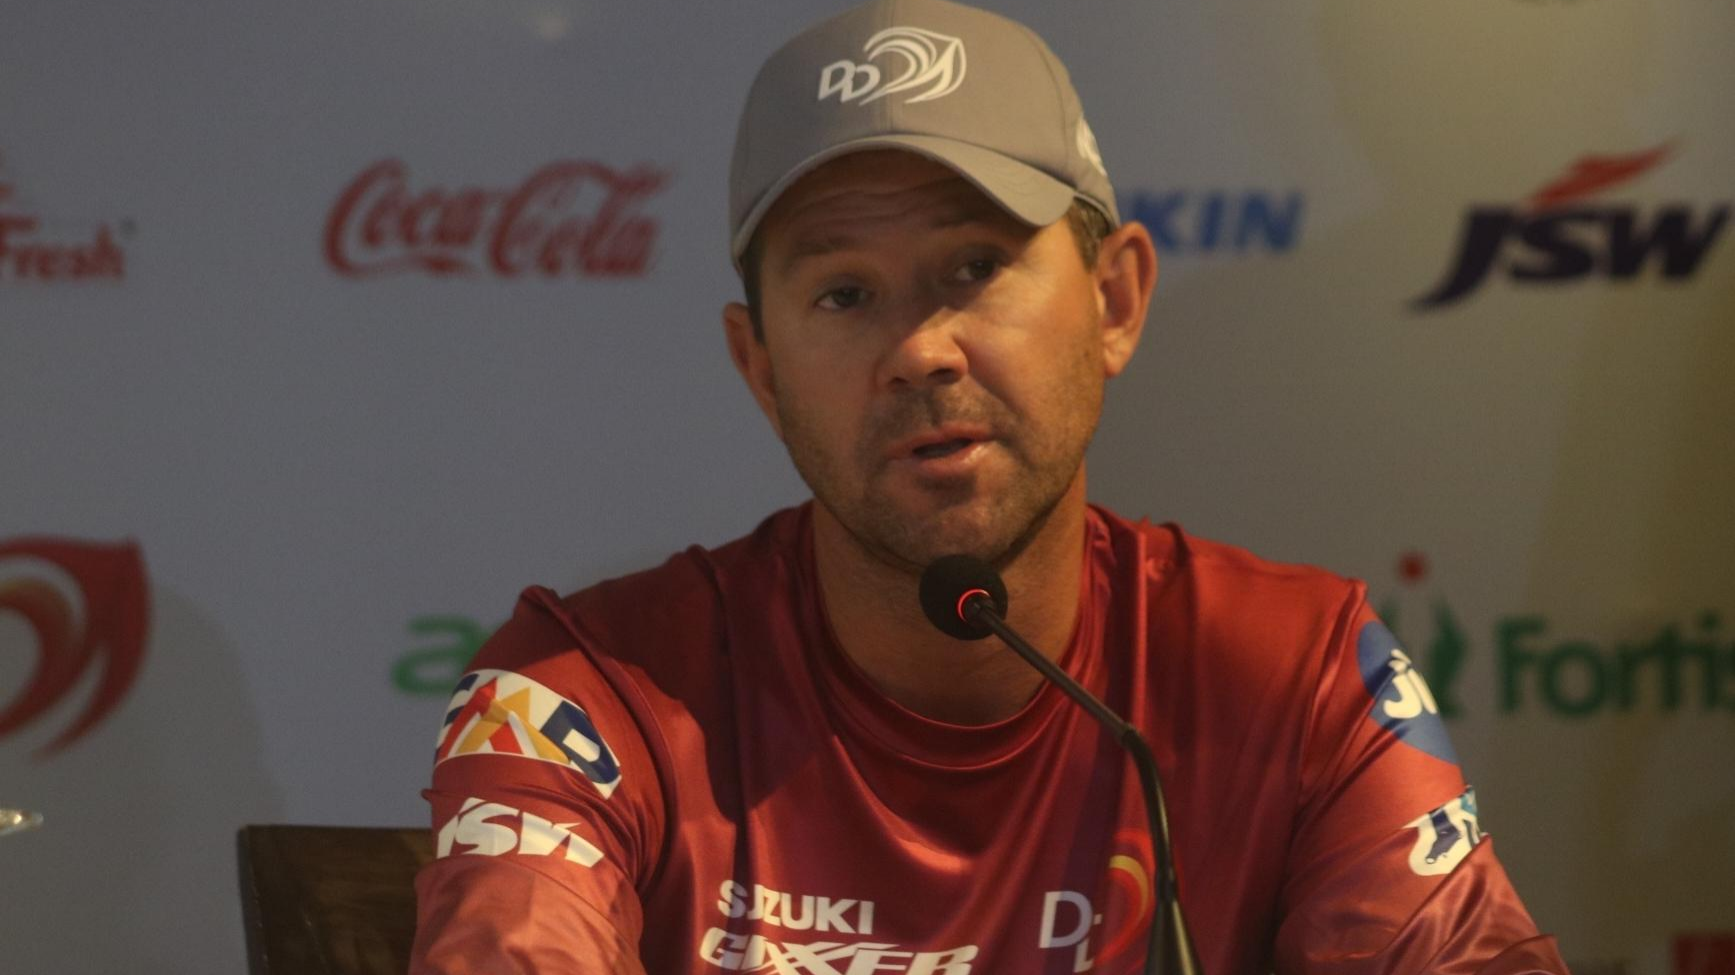 IPL 2018: Ricky Ponting's alarming take on Glenn Maxwell after his poor outing for Delhi Daredevils